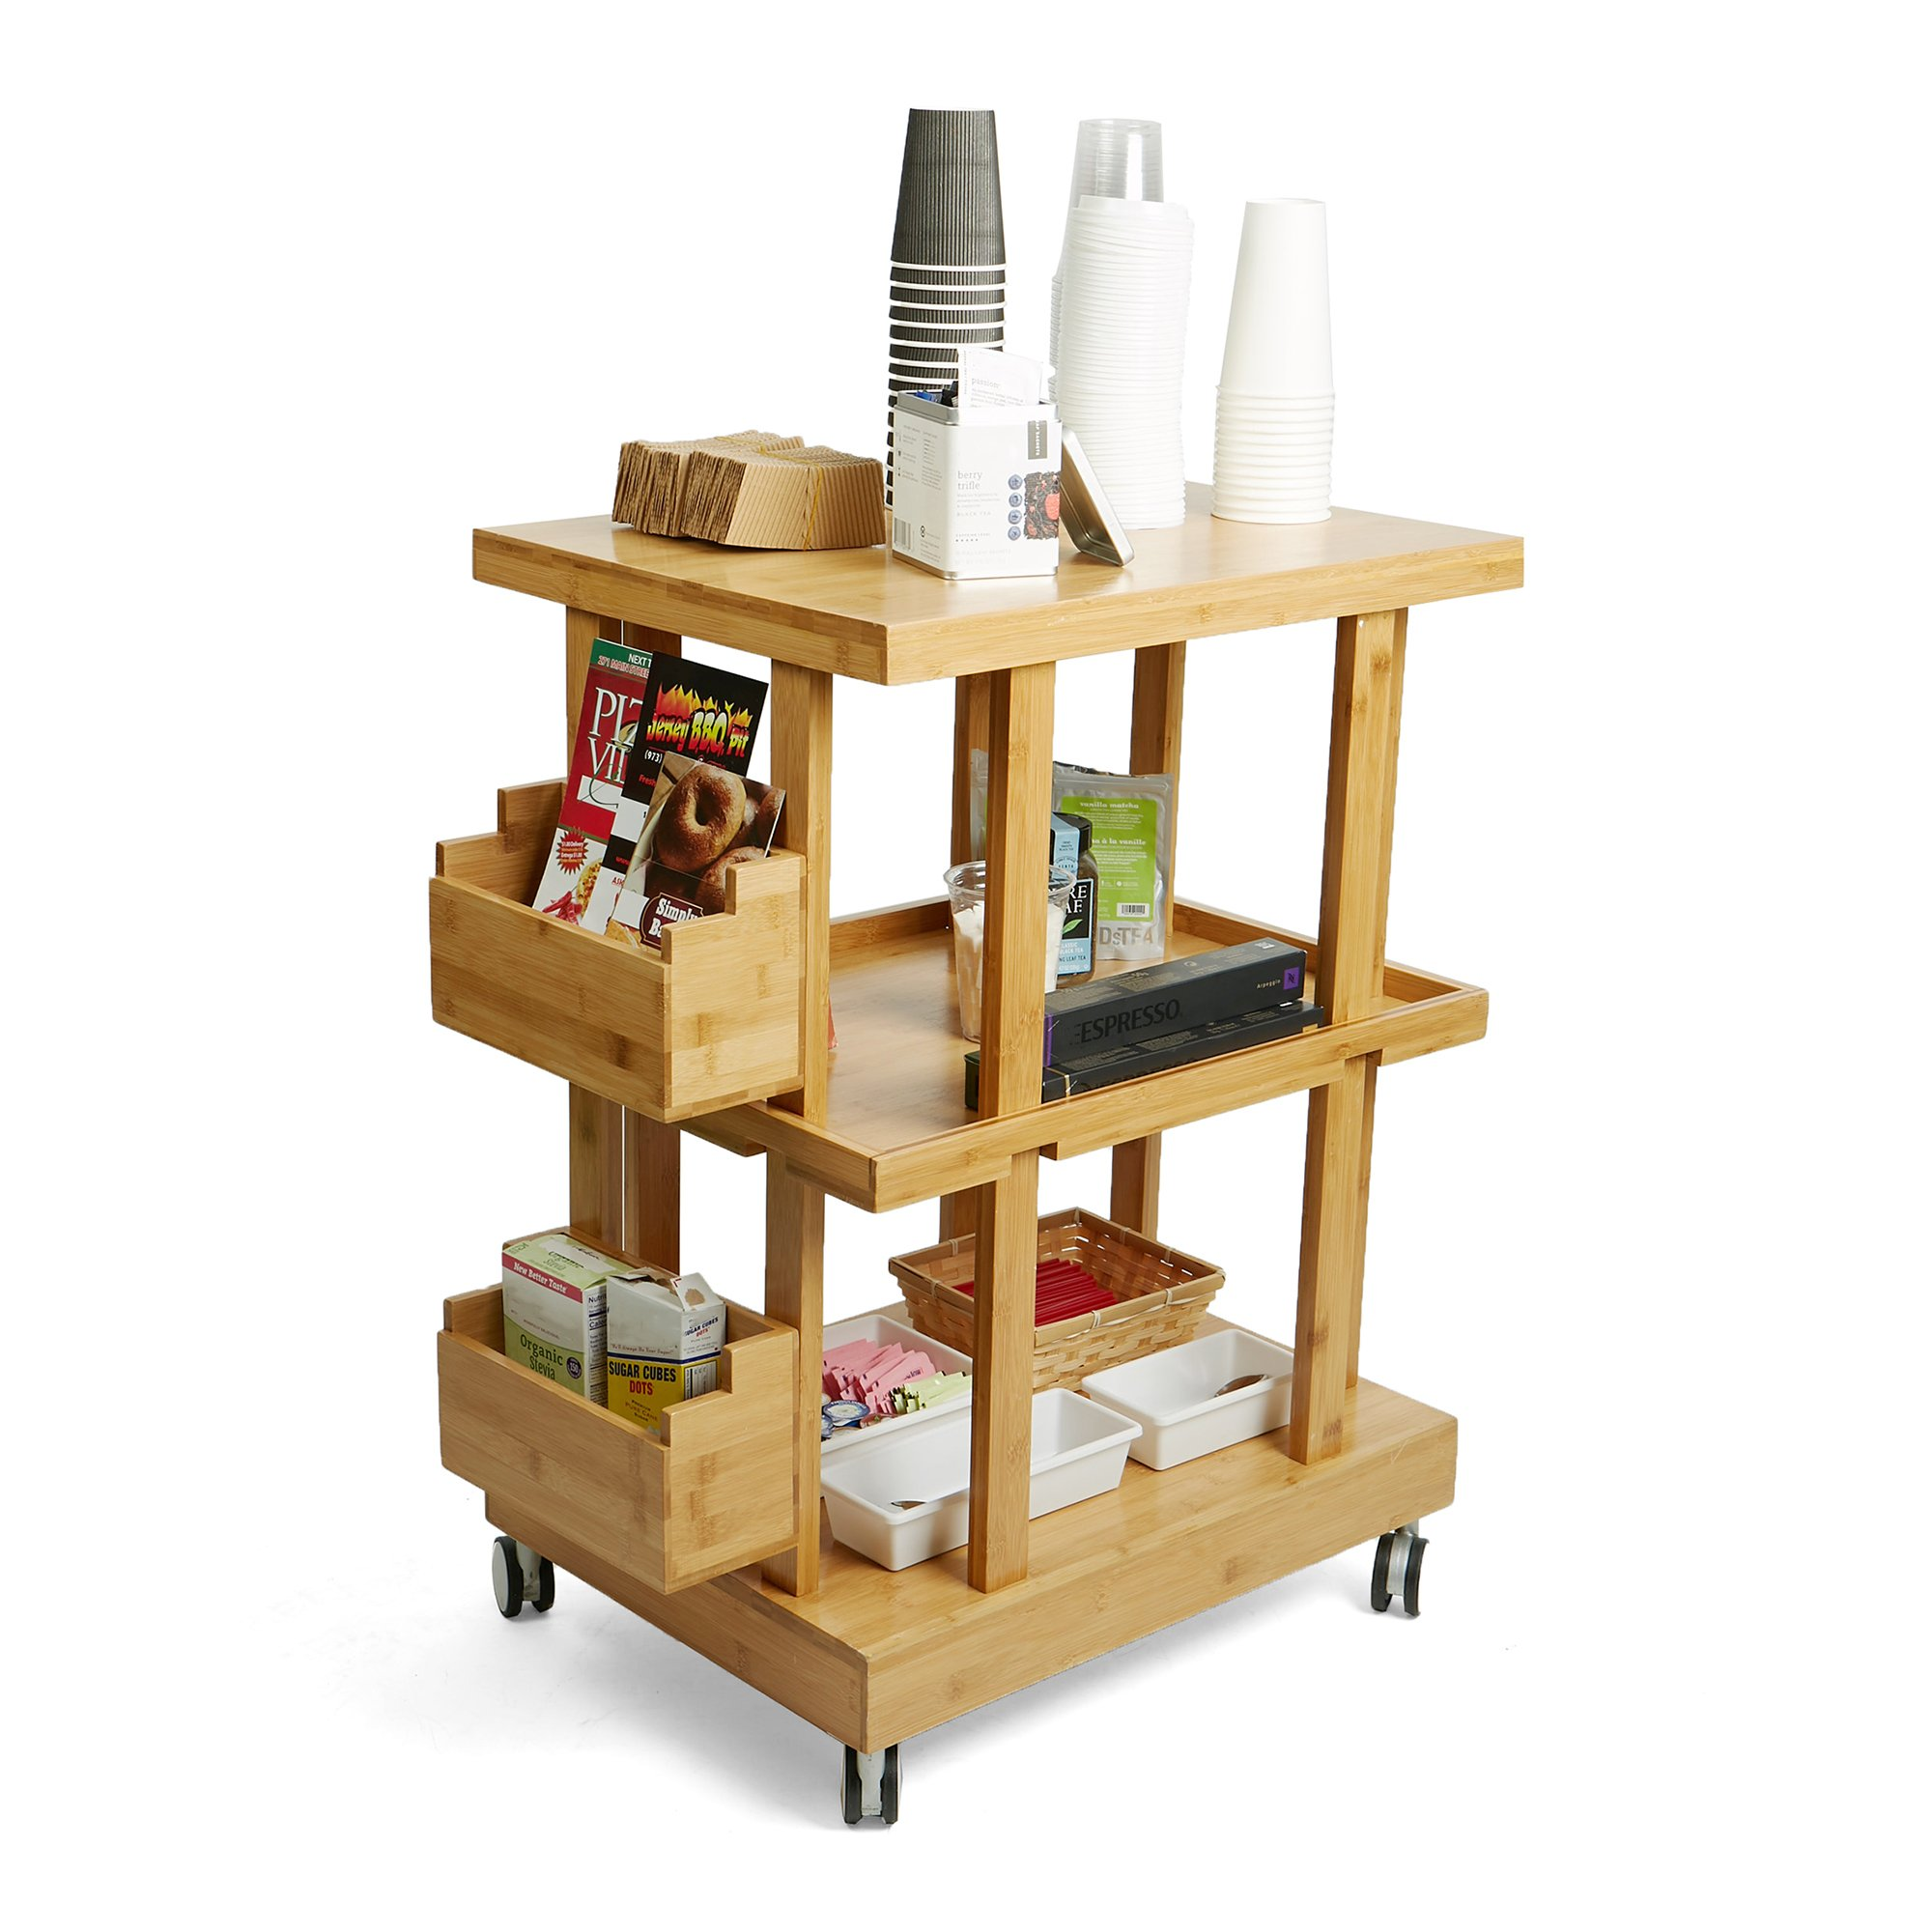 Mind Reader 3-Tier Kitchen Utility Cart with 2 Storage Compartments, Bamboo Wood, Brown by Mind Reader (Image #2)